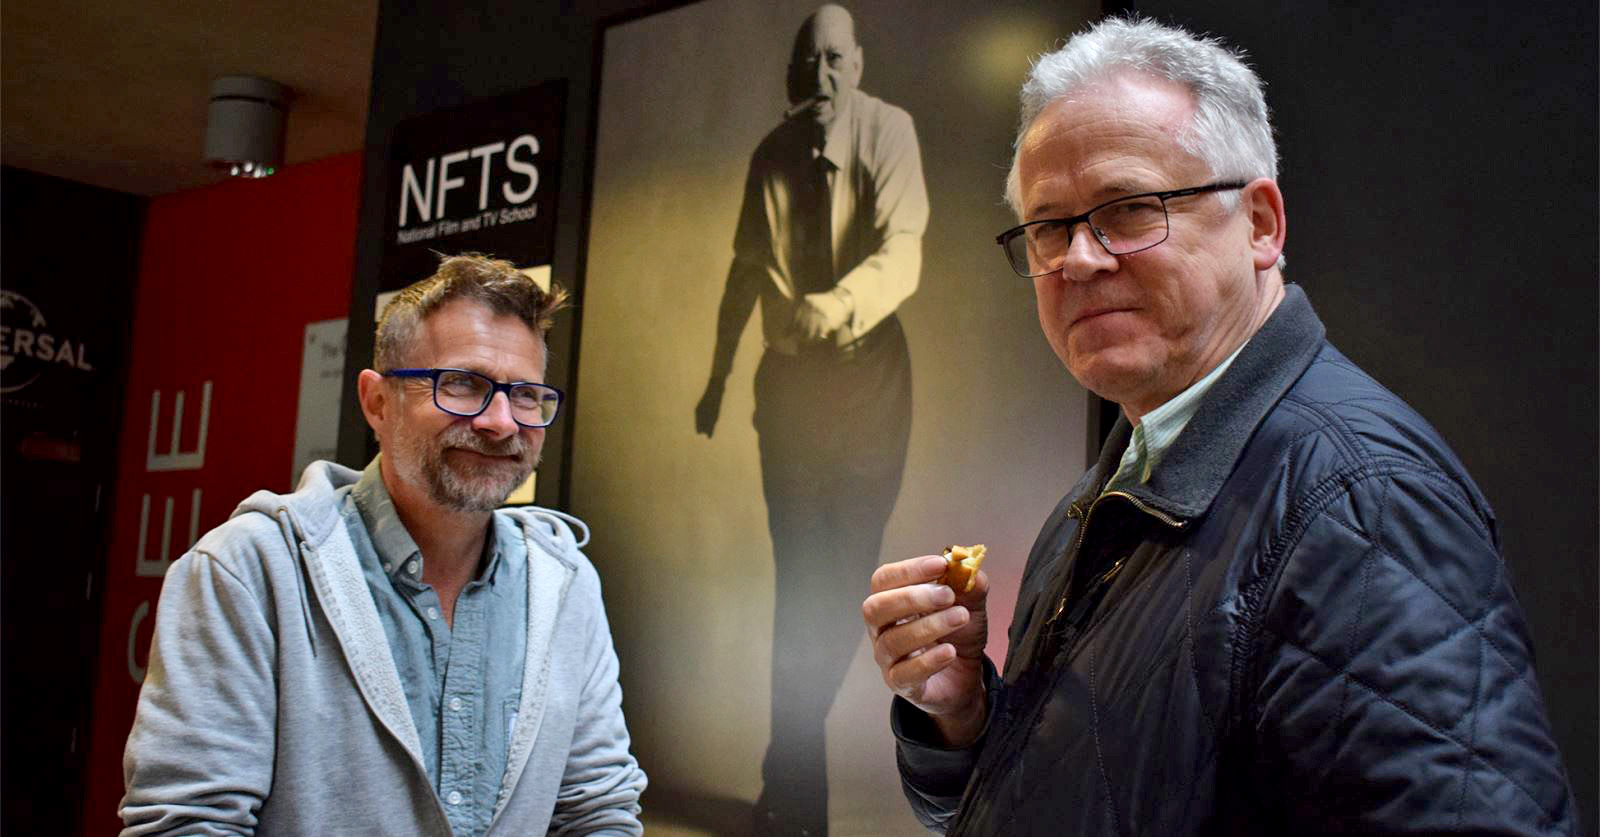 GTC workshop speakers Iain Davidson and Bernie Davis at the NFTS